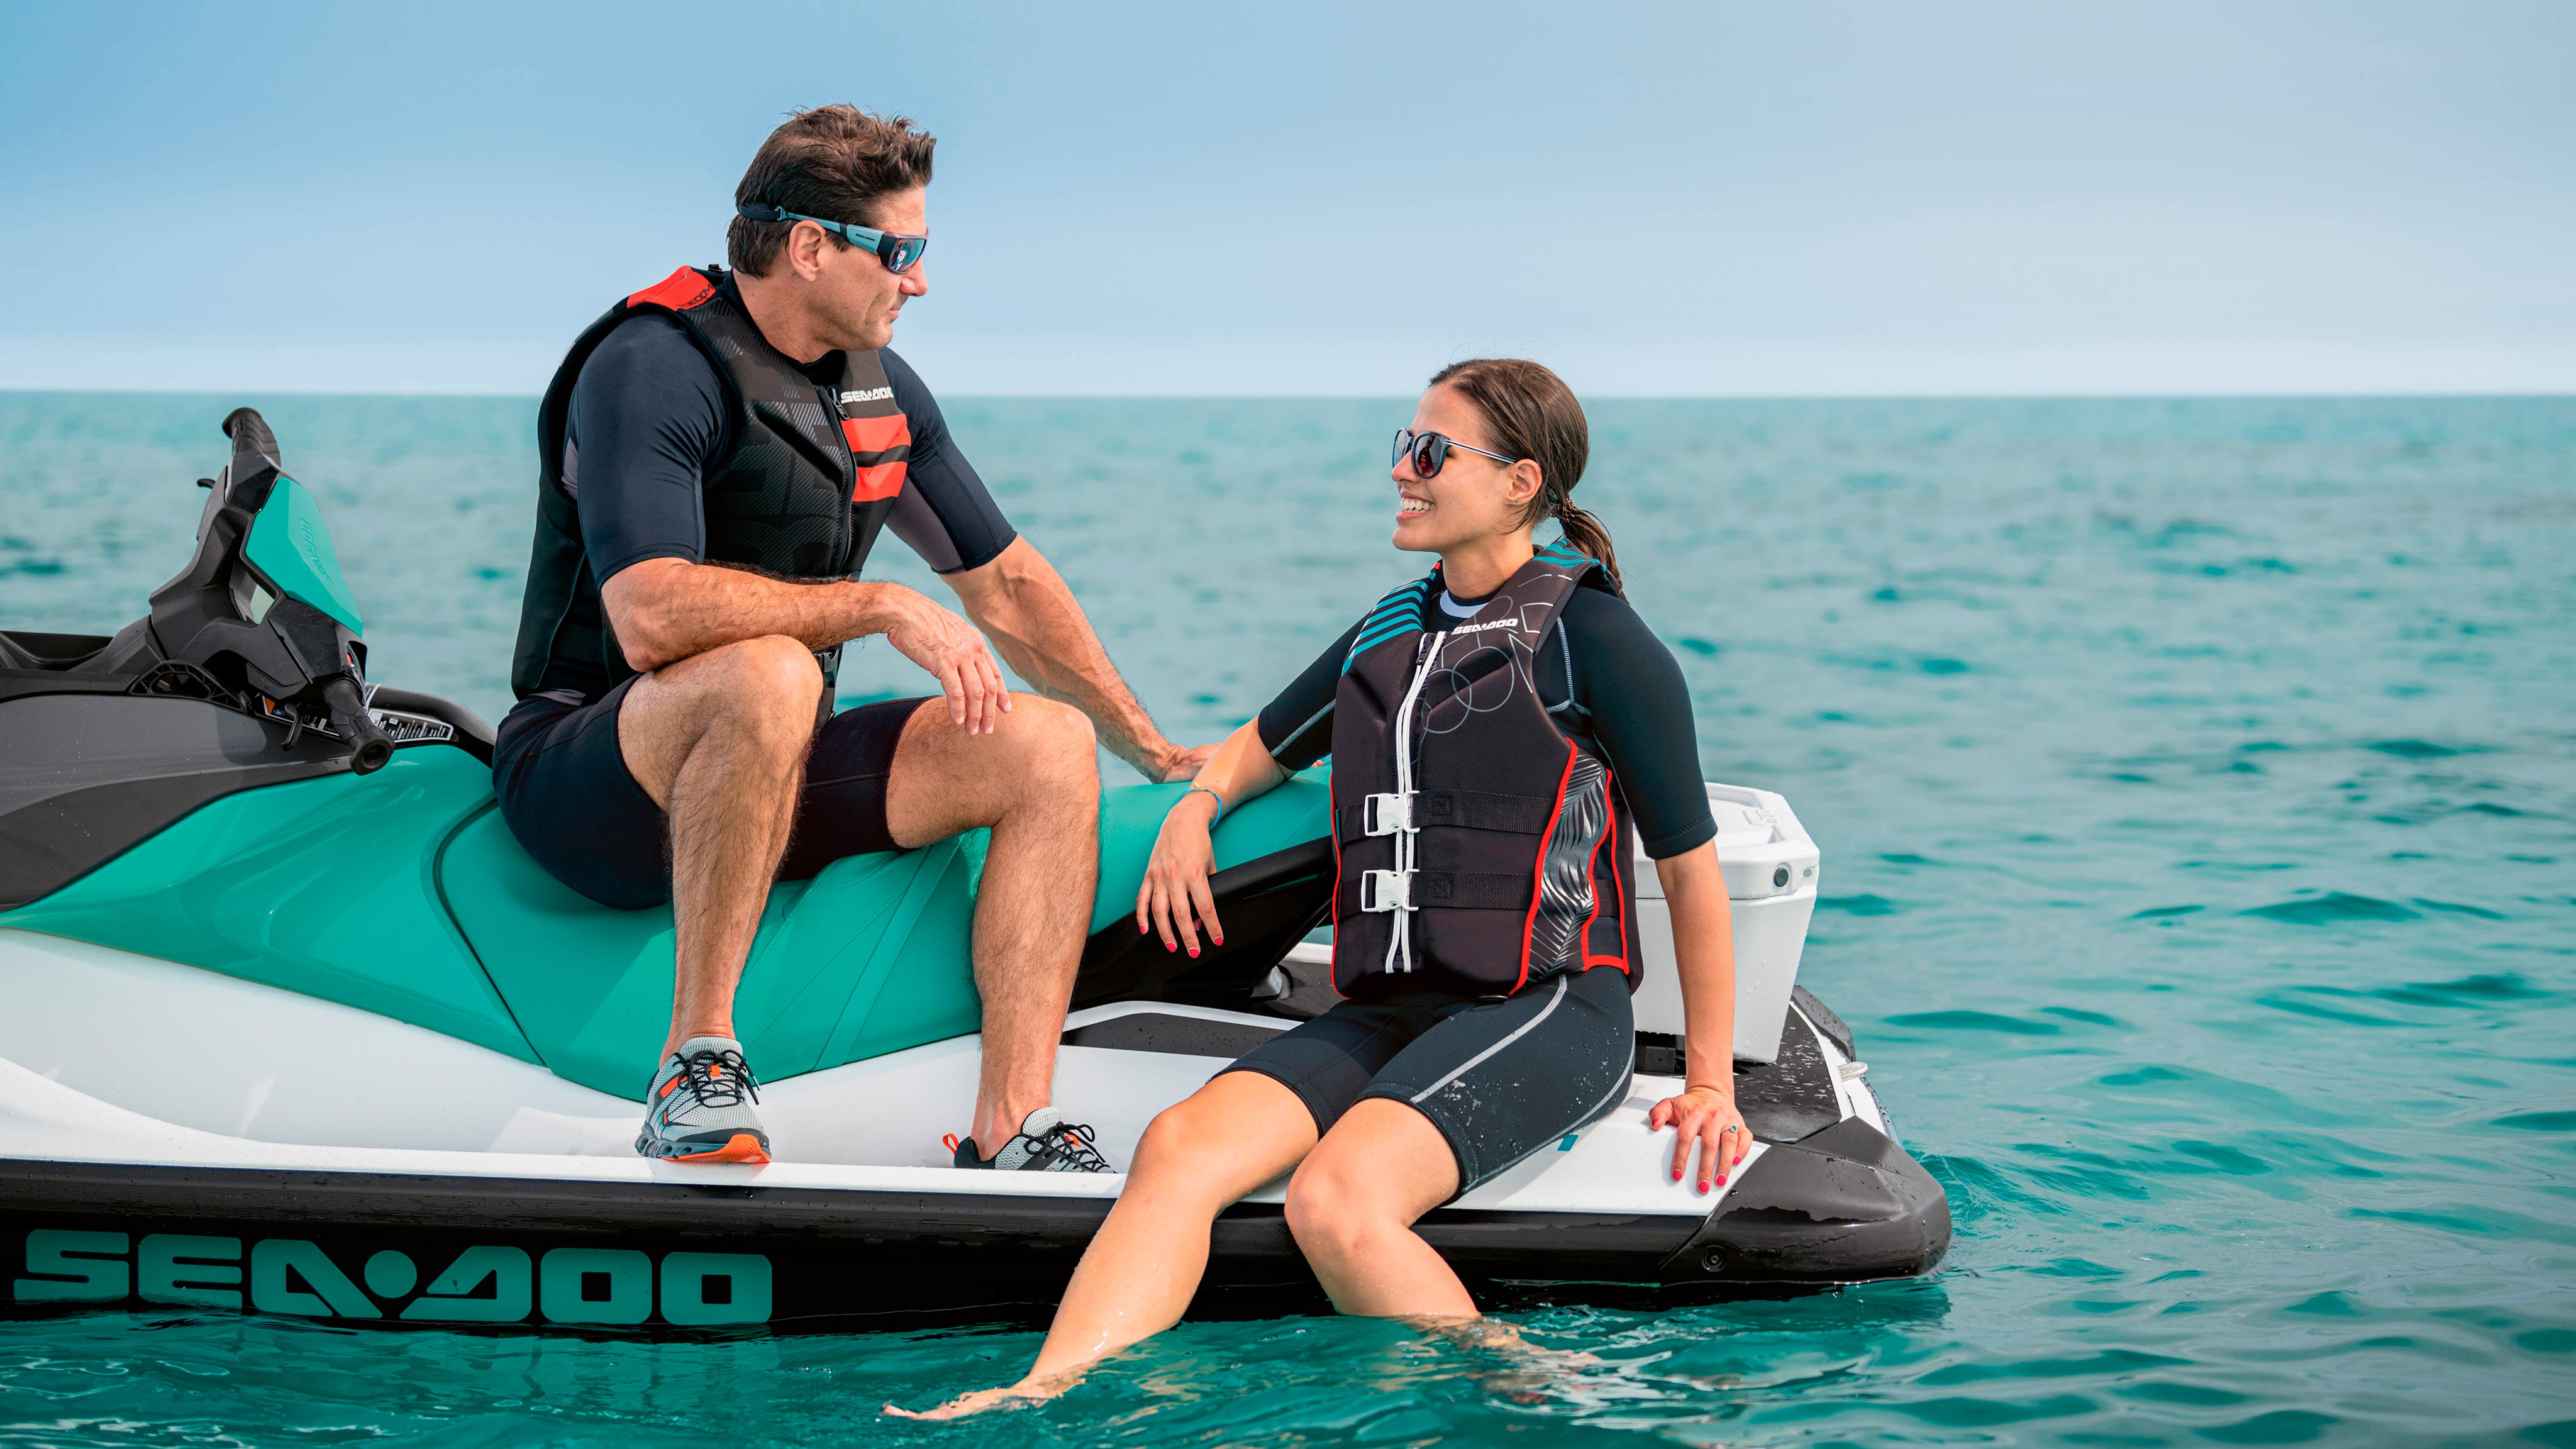 Couple chatting on Sea-Doo watercraft